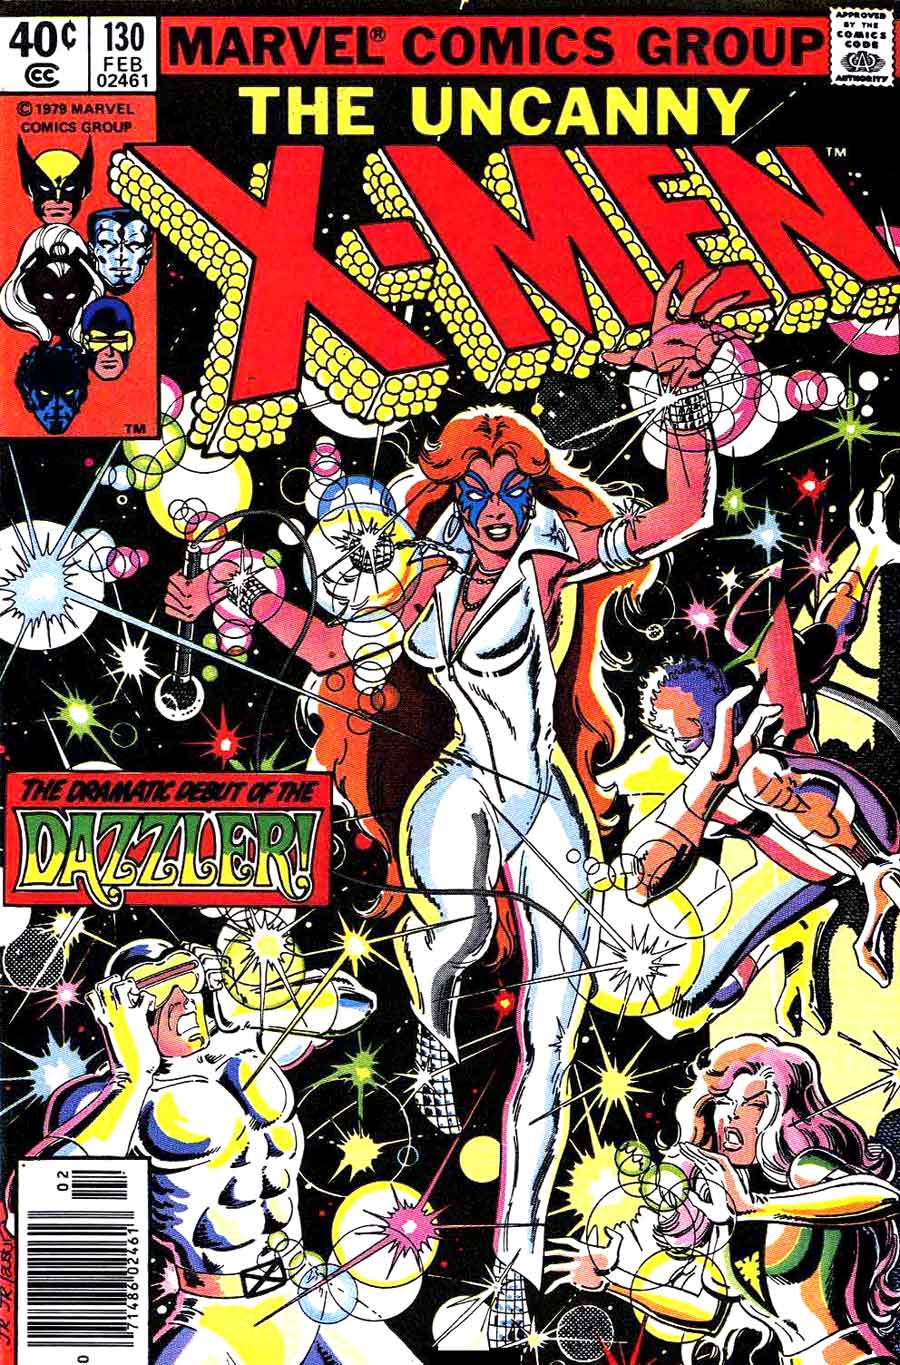 X-men v1 #130 marvel comic book cover art by John Byrne